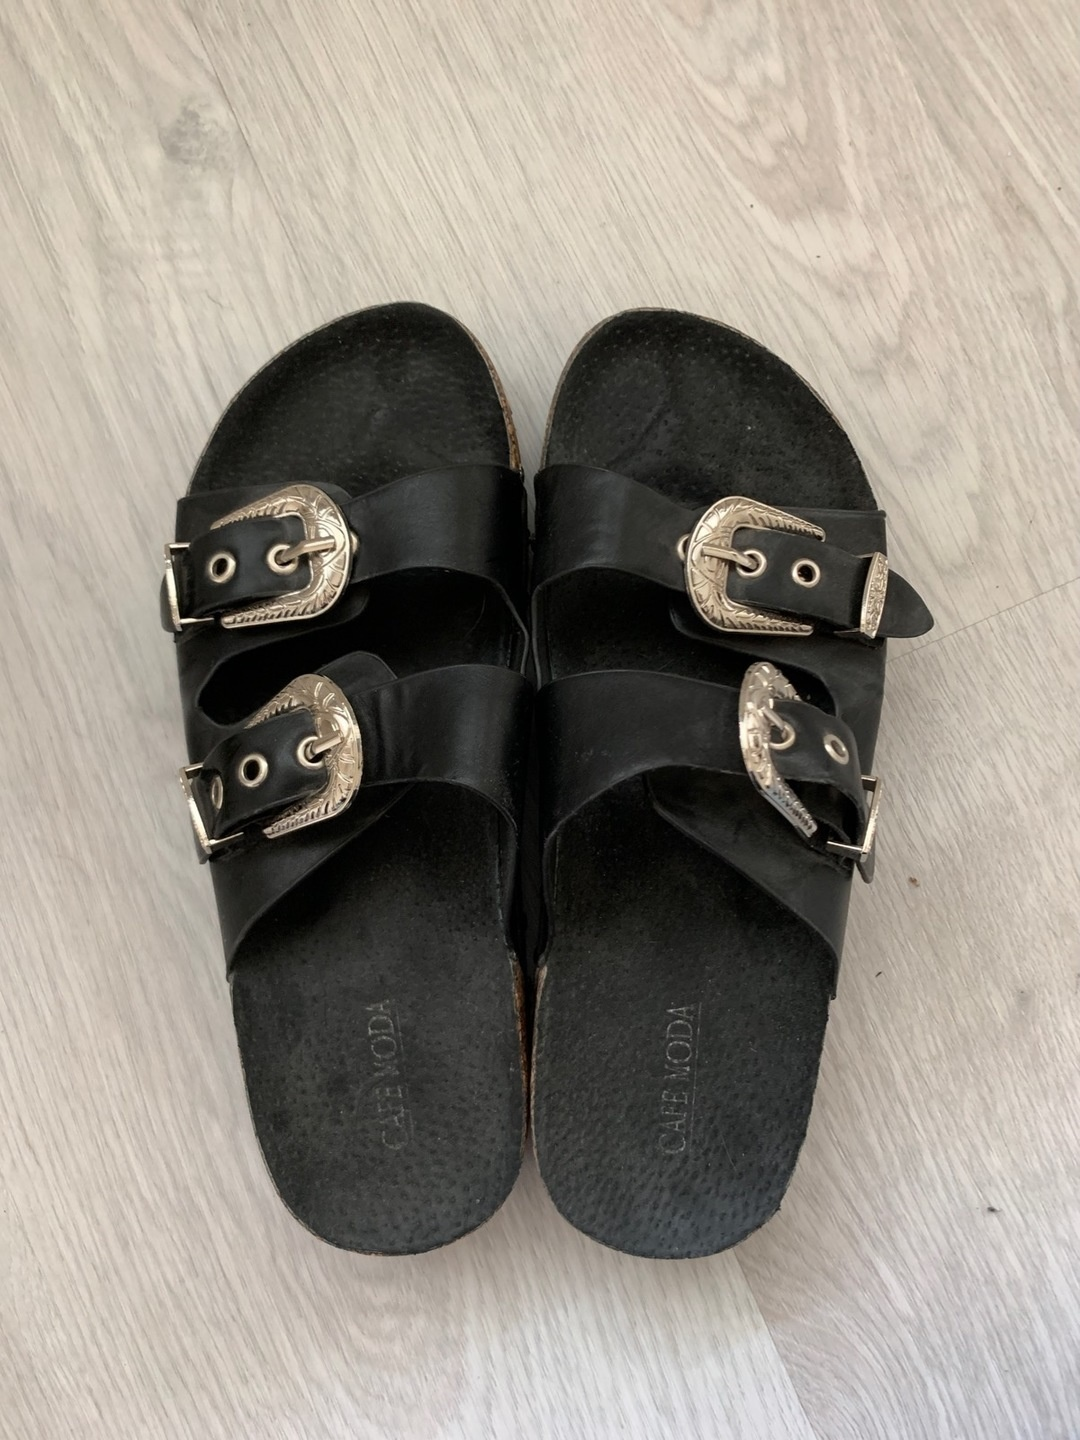 Women's sandals & slippers - CAFE MODA photo 2